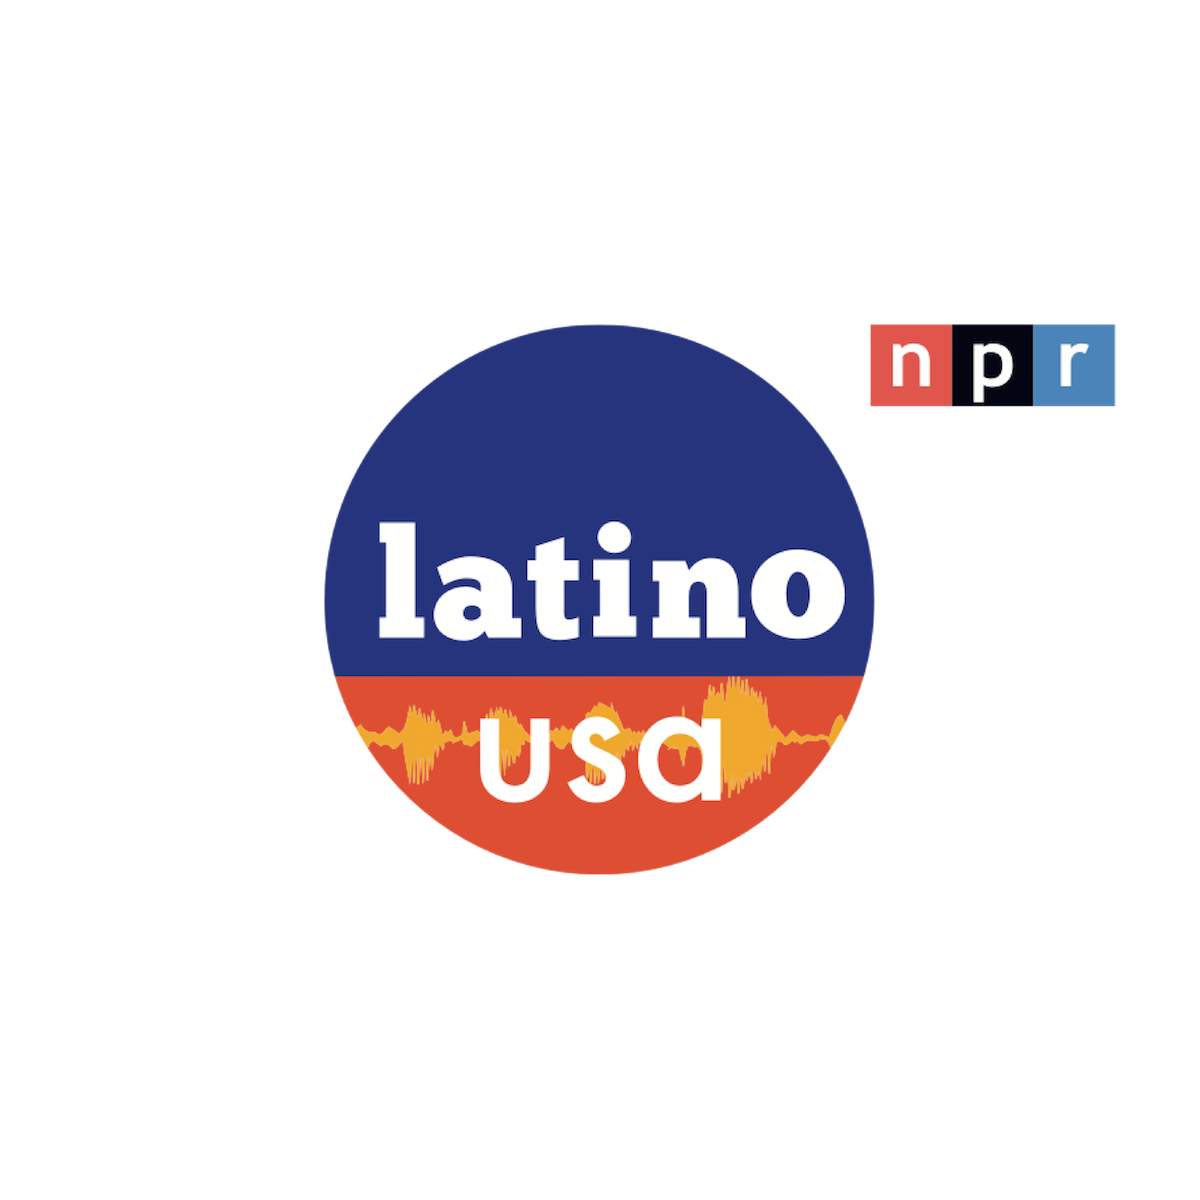 Wage Theft in NYC's Restaurants for NPR's Latino USA -